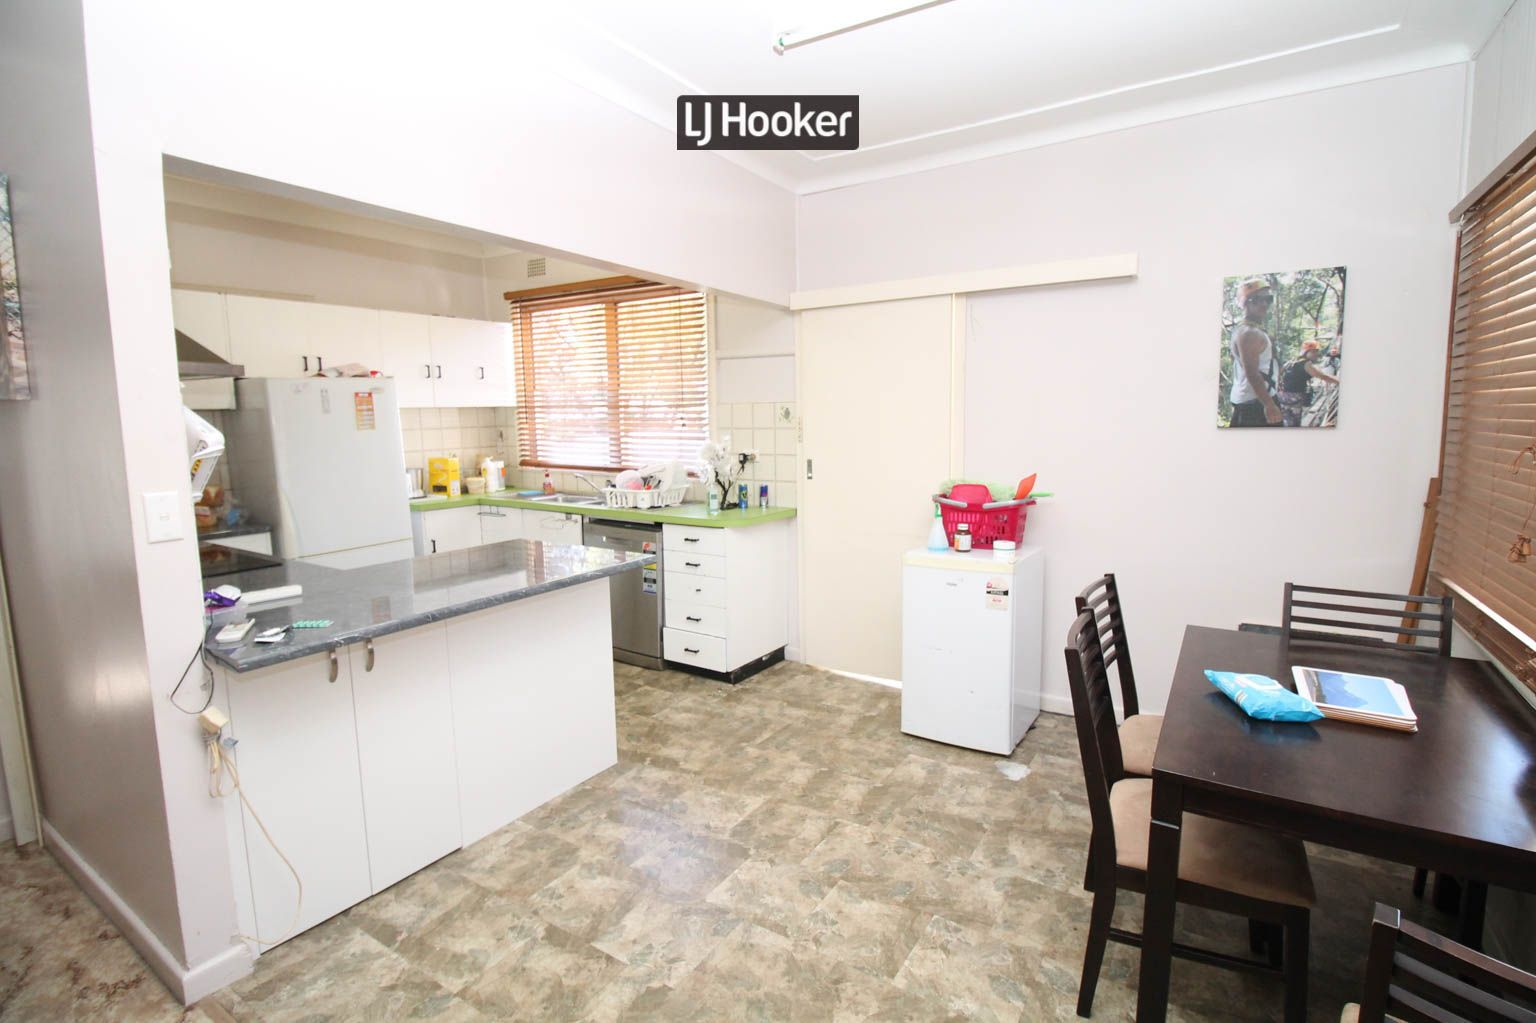 18-20 Gilchrist Street, Inverell NSW 2360, Image 2